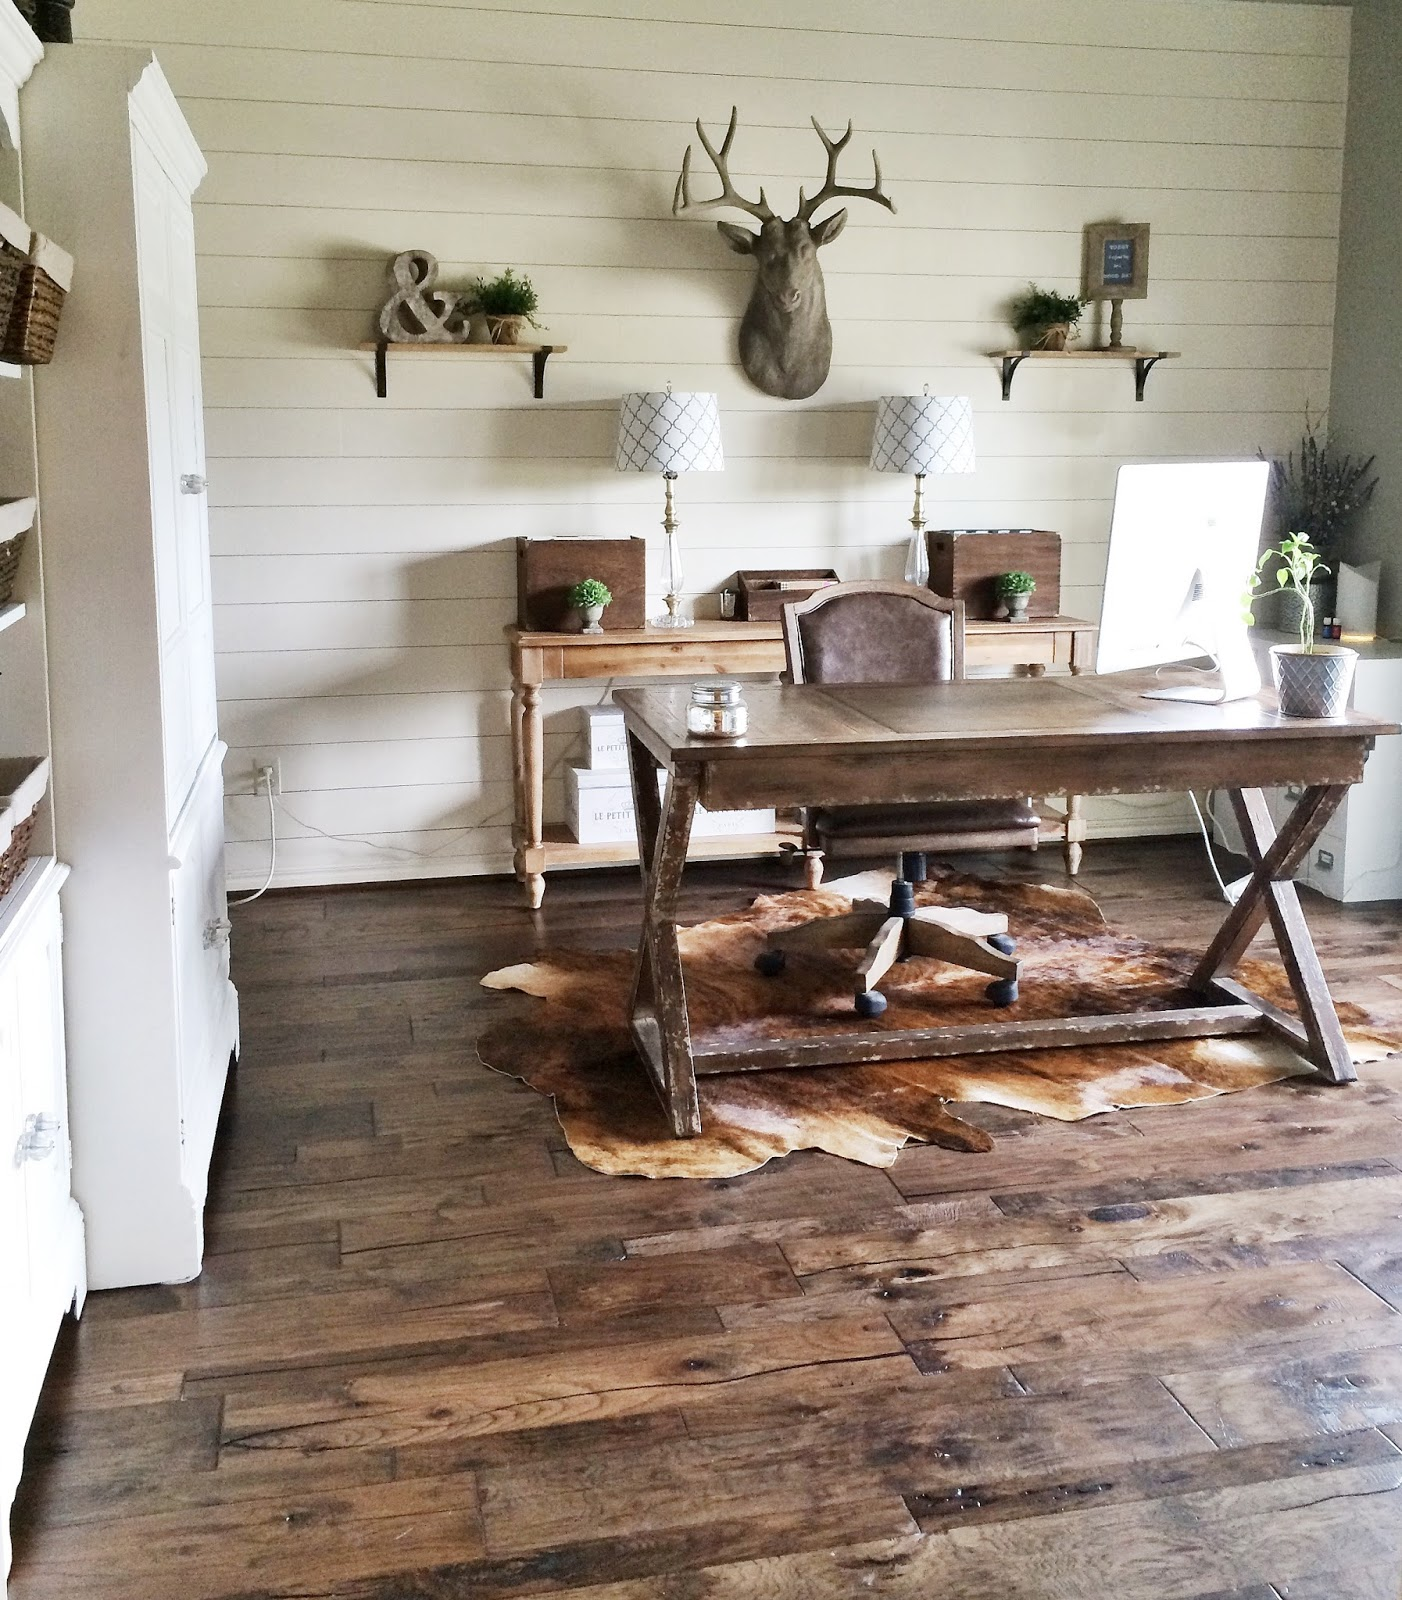 Beautiful Home Office Ideas: How To Install A Shiplap Wall + Rustic